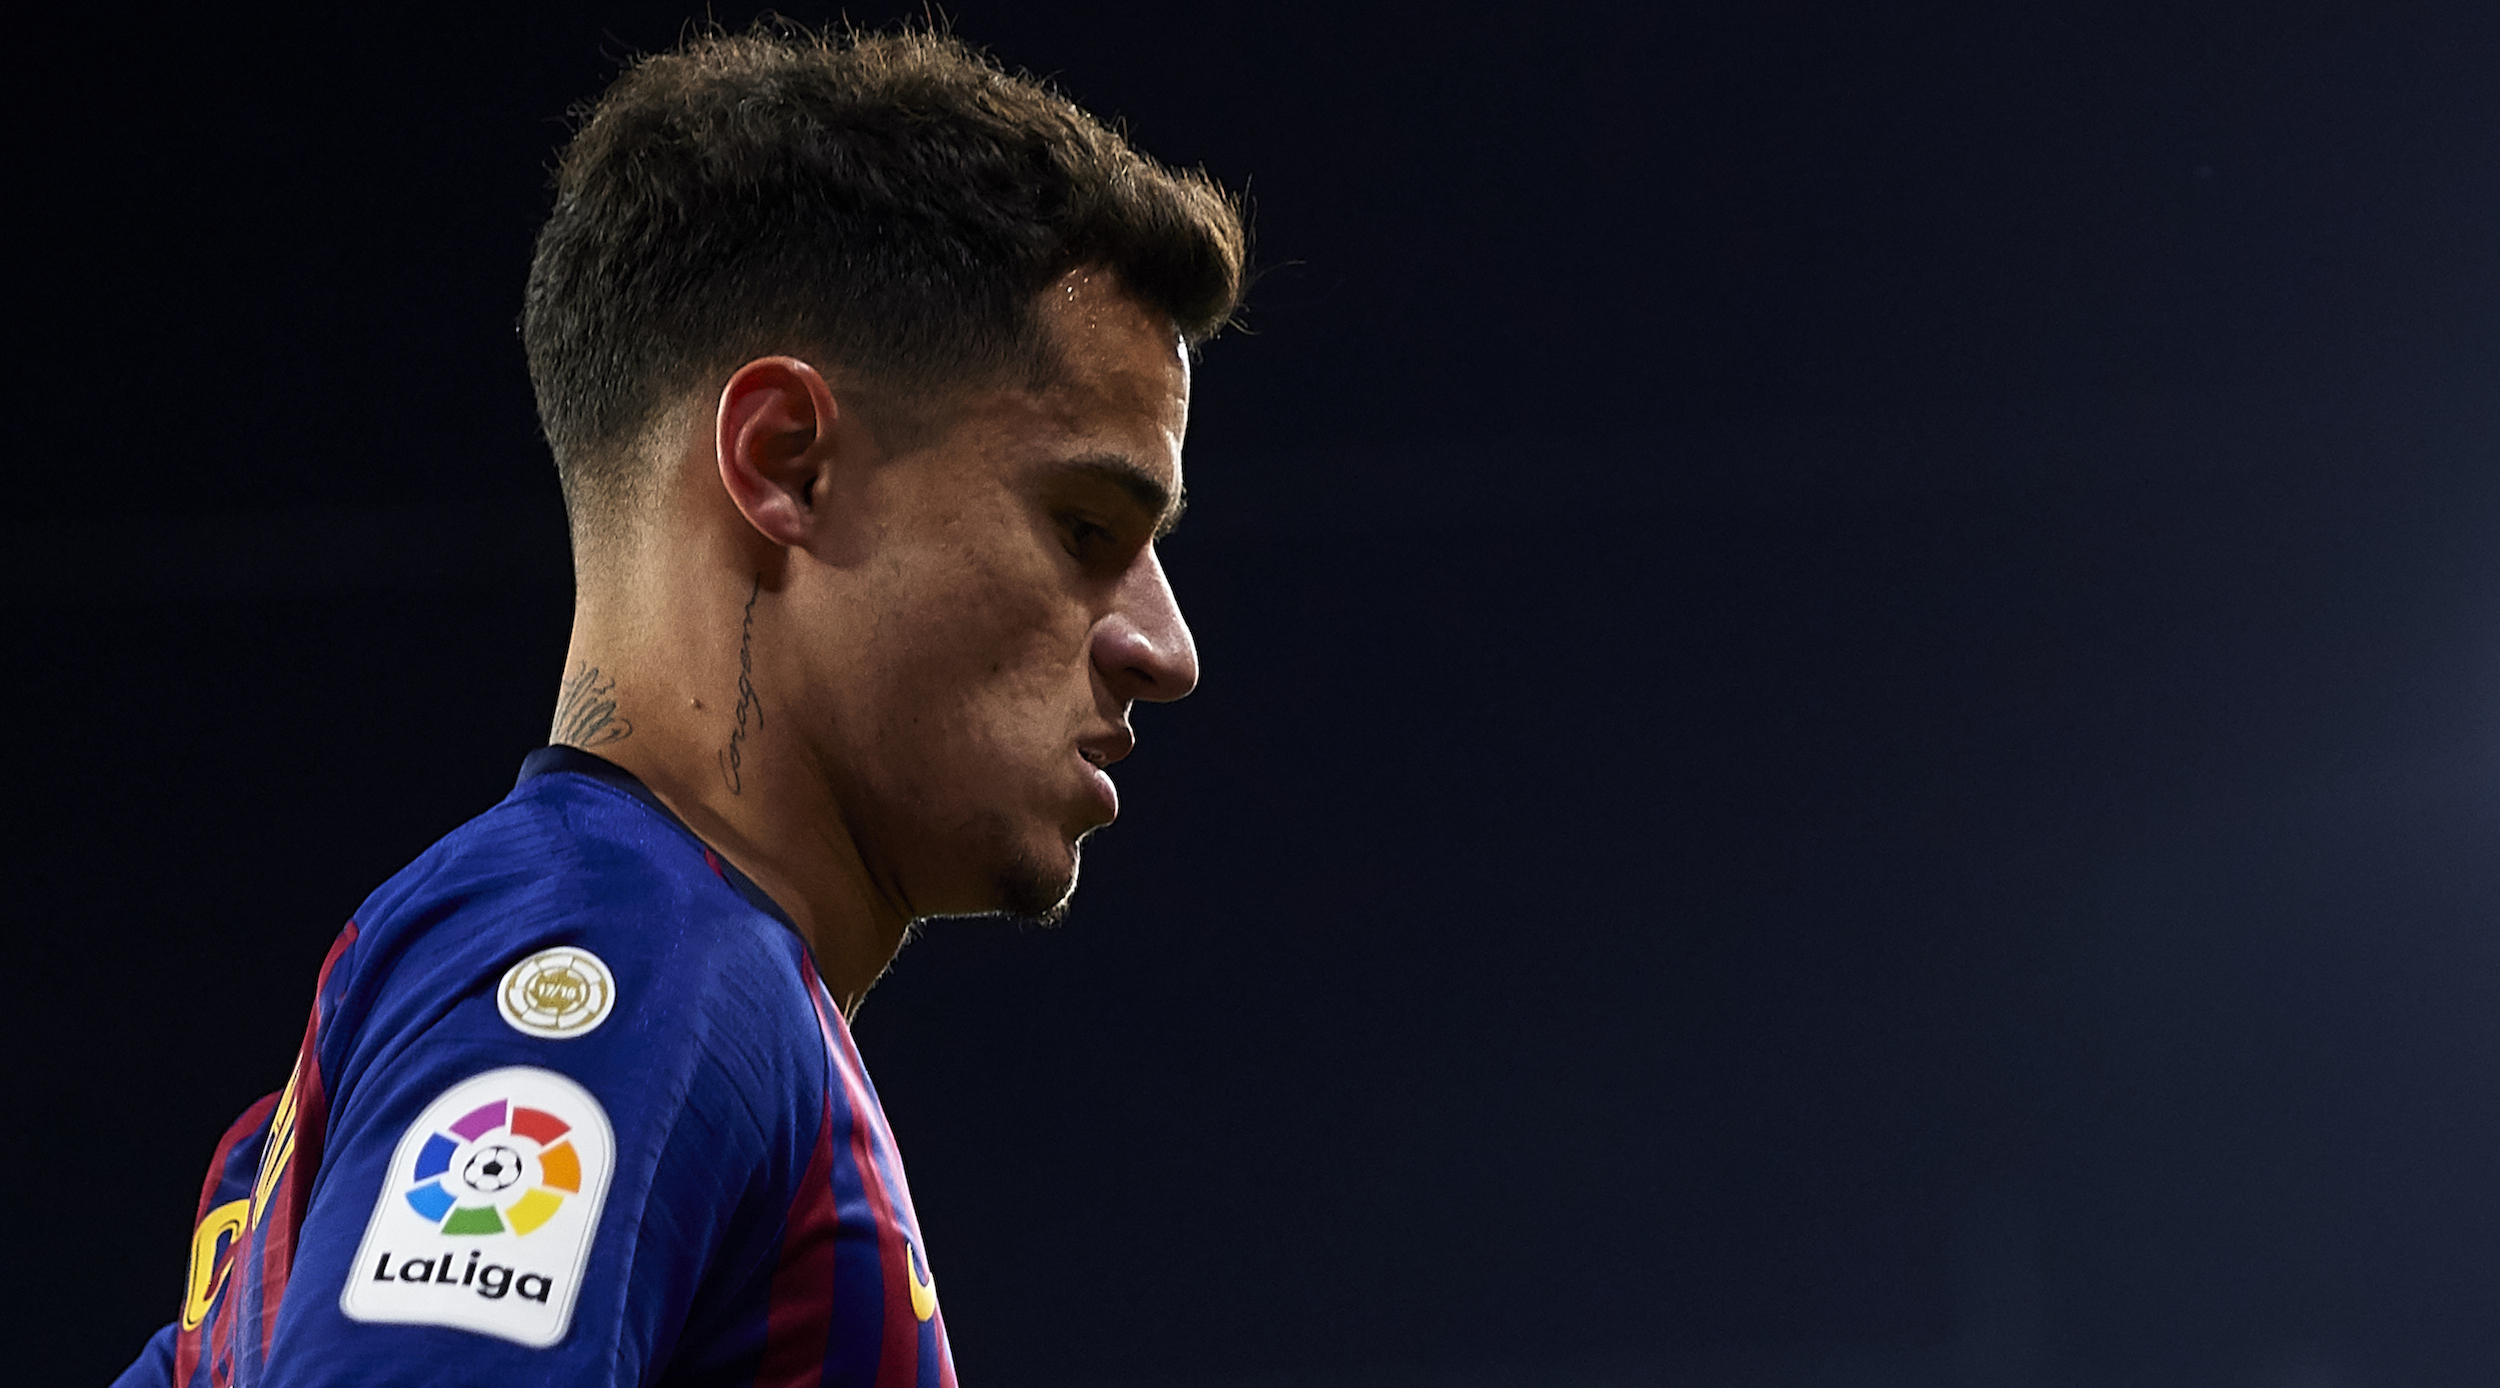 SEVILLE, SPAIN - JANUARY 23: Philippe Coutinho of FC Barcelona looks on during the Copa del Quarter Final match between Sevilla FC and FC Barcelona at Estadio Ramon Sanchez Pizjuan on January 23, 2019 in Seville, Spain. (Photo by Aitor Alcalde/Getty Images)